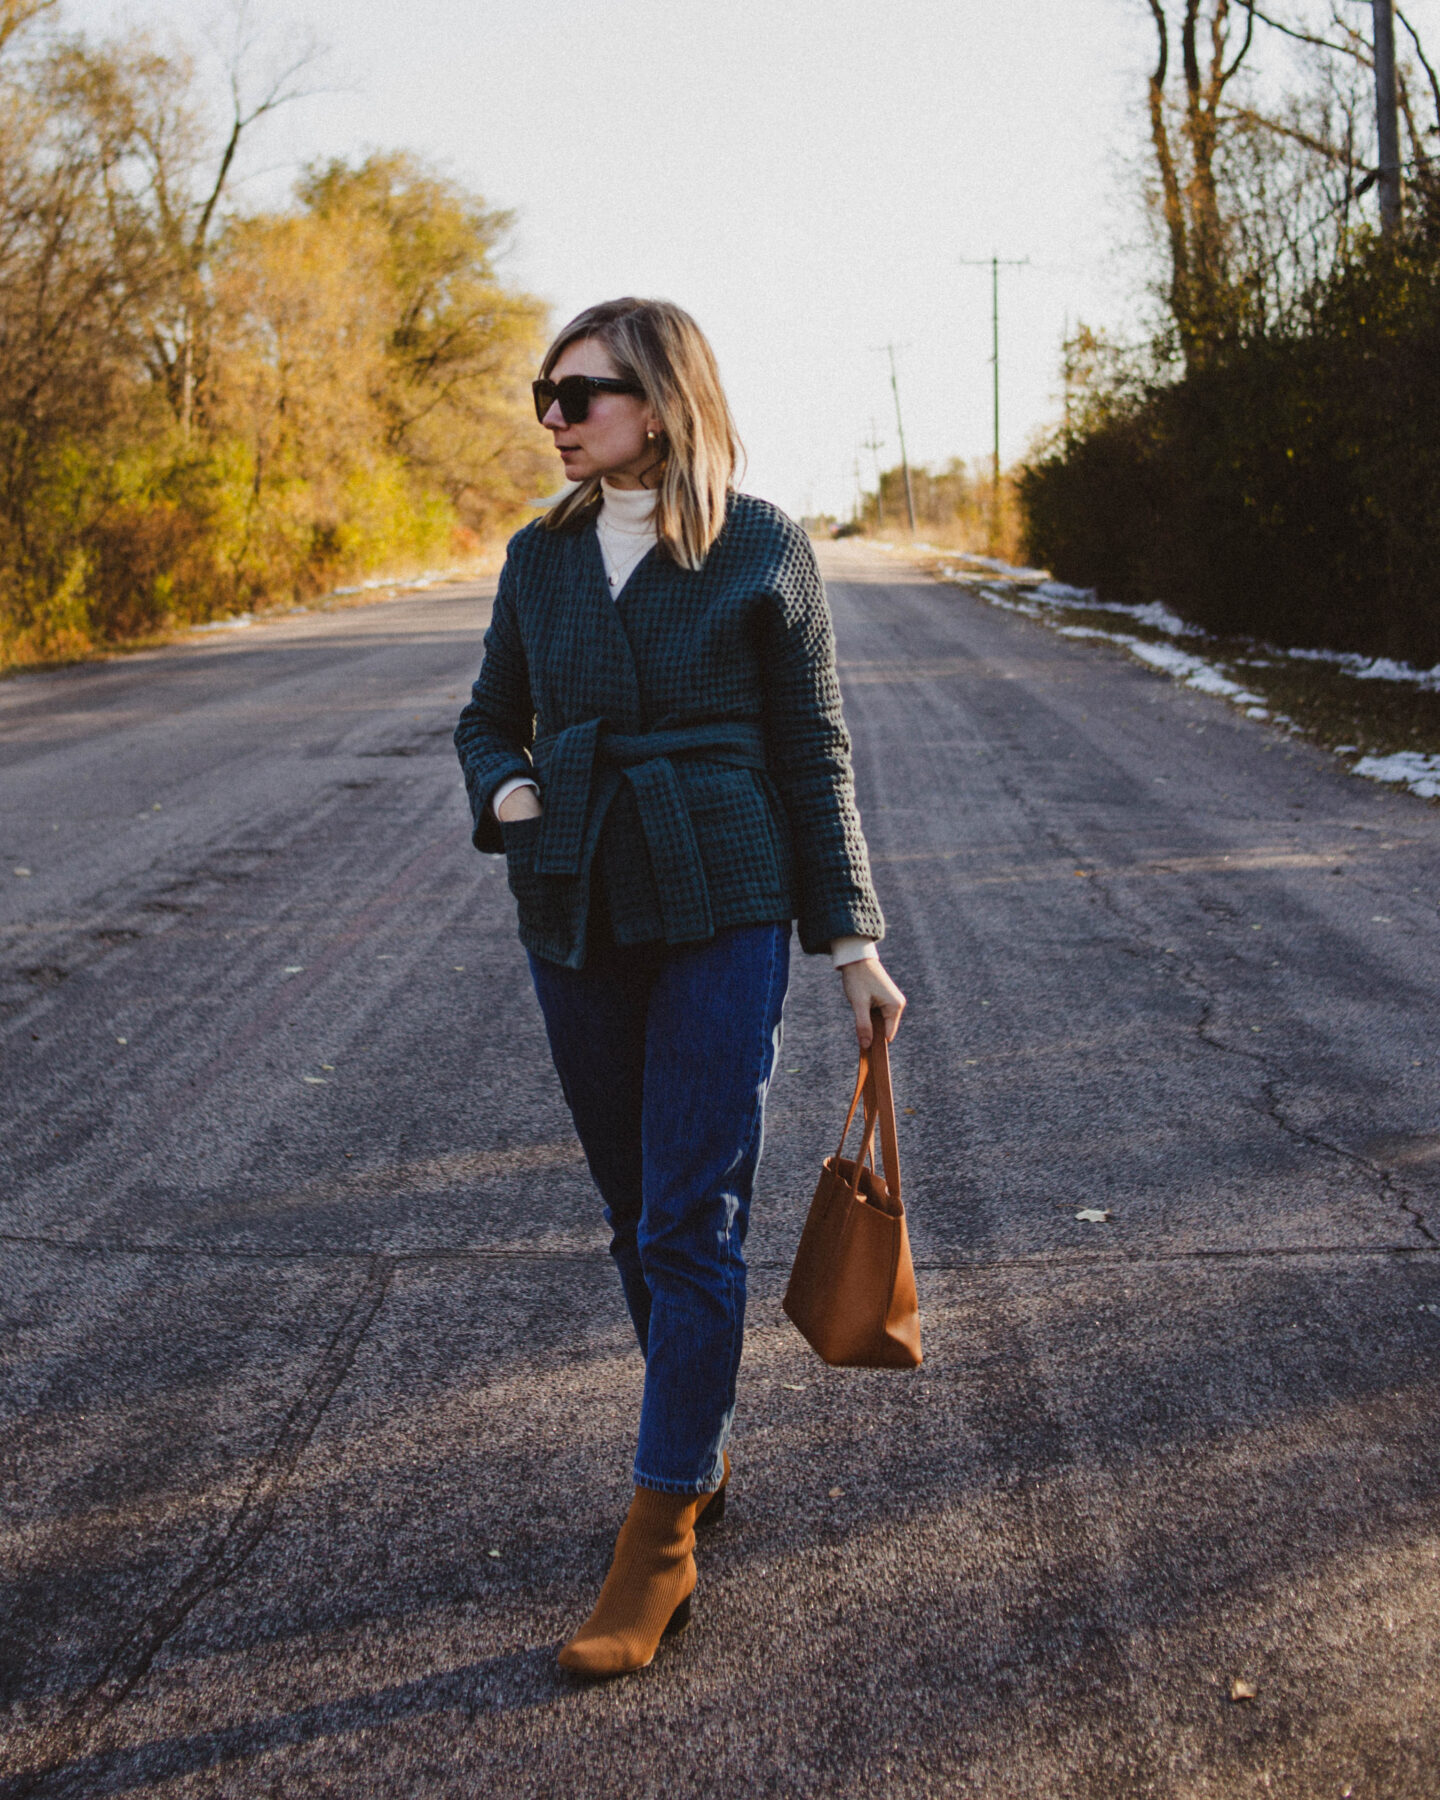 The Wrap Jacket: Nov. 2, 2020 Outfit